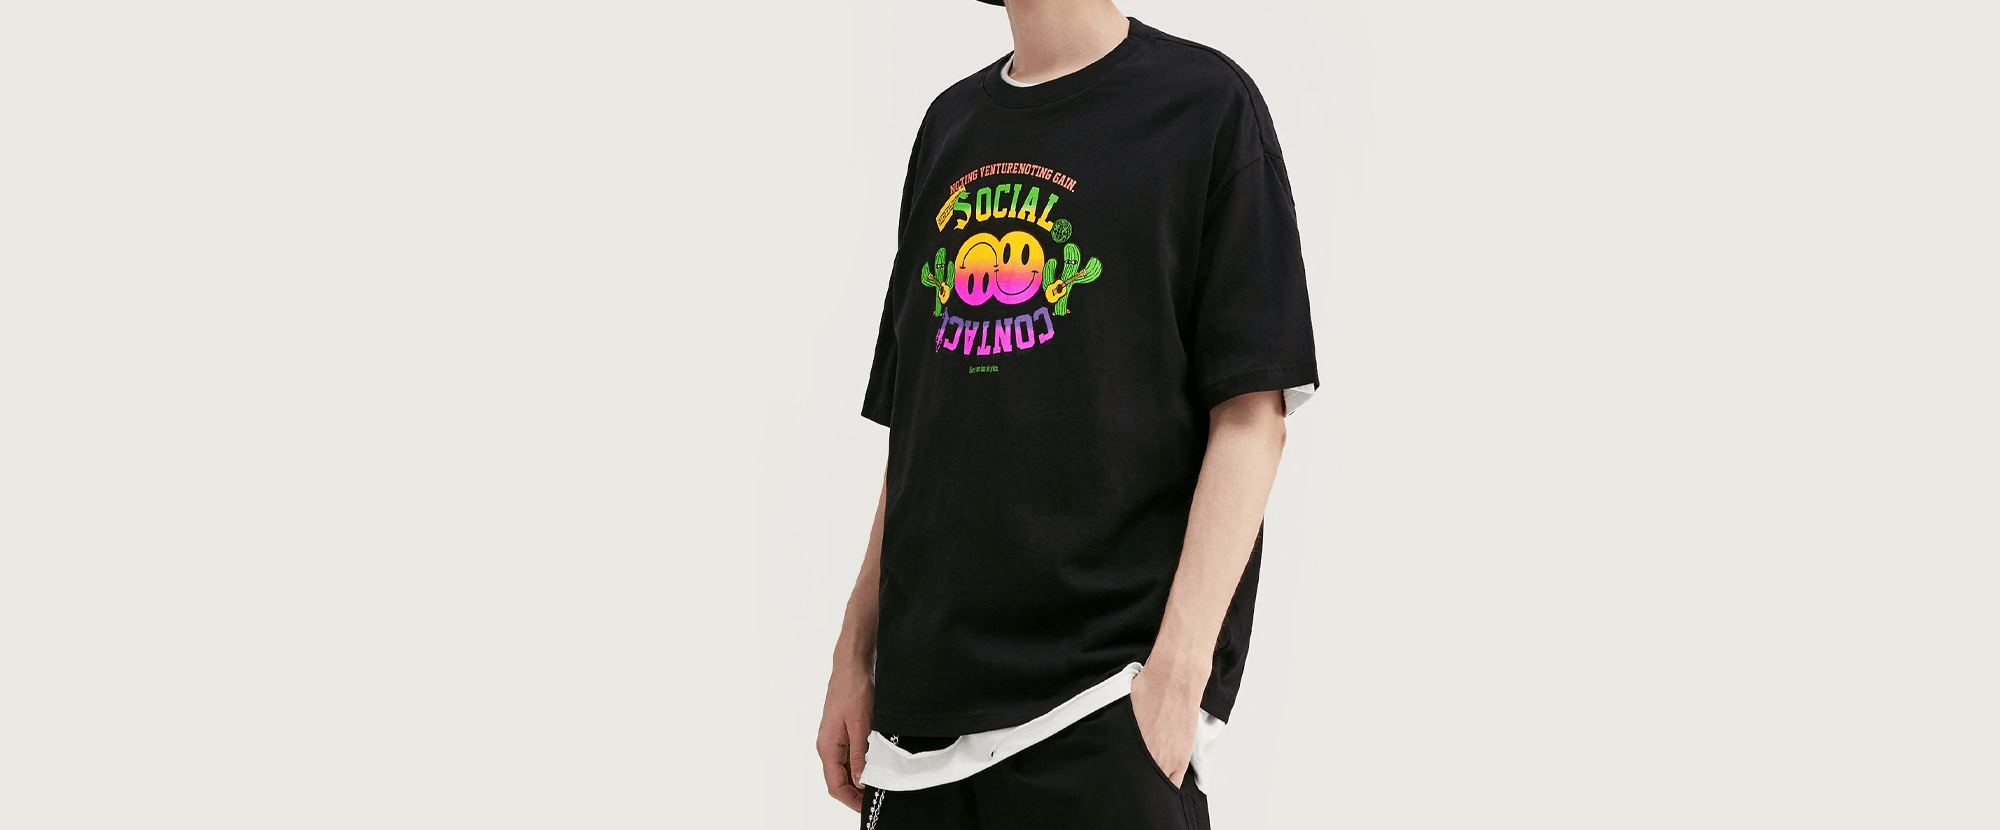 You are currently viewing Où trouver des t-shirts oversize vierges ?